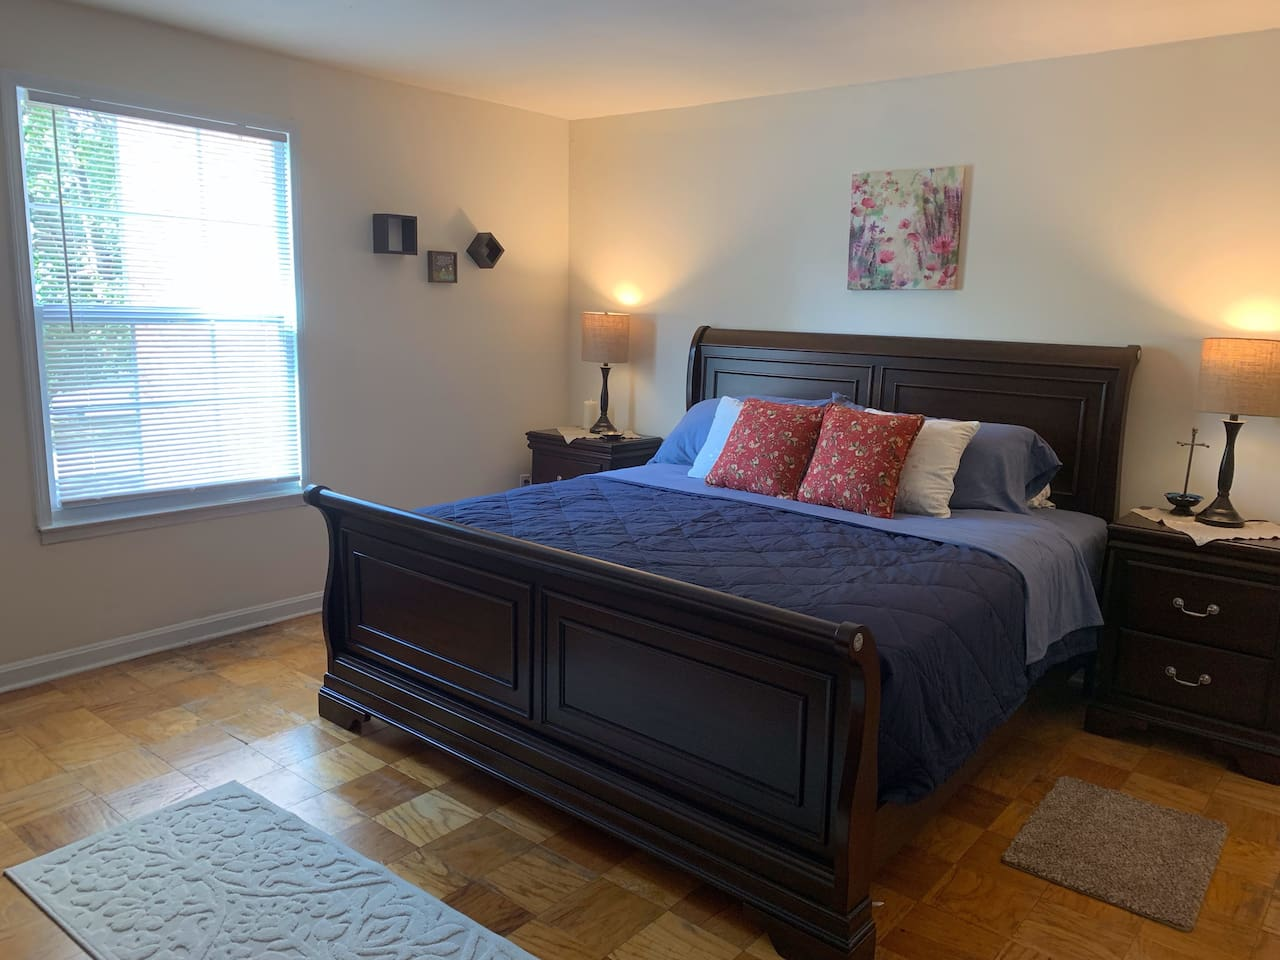 King-Size bed, full closet and dressers available